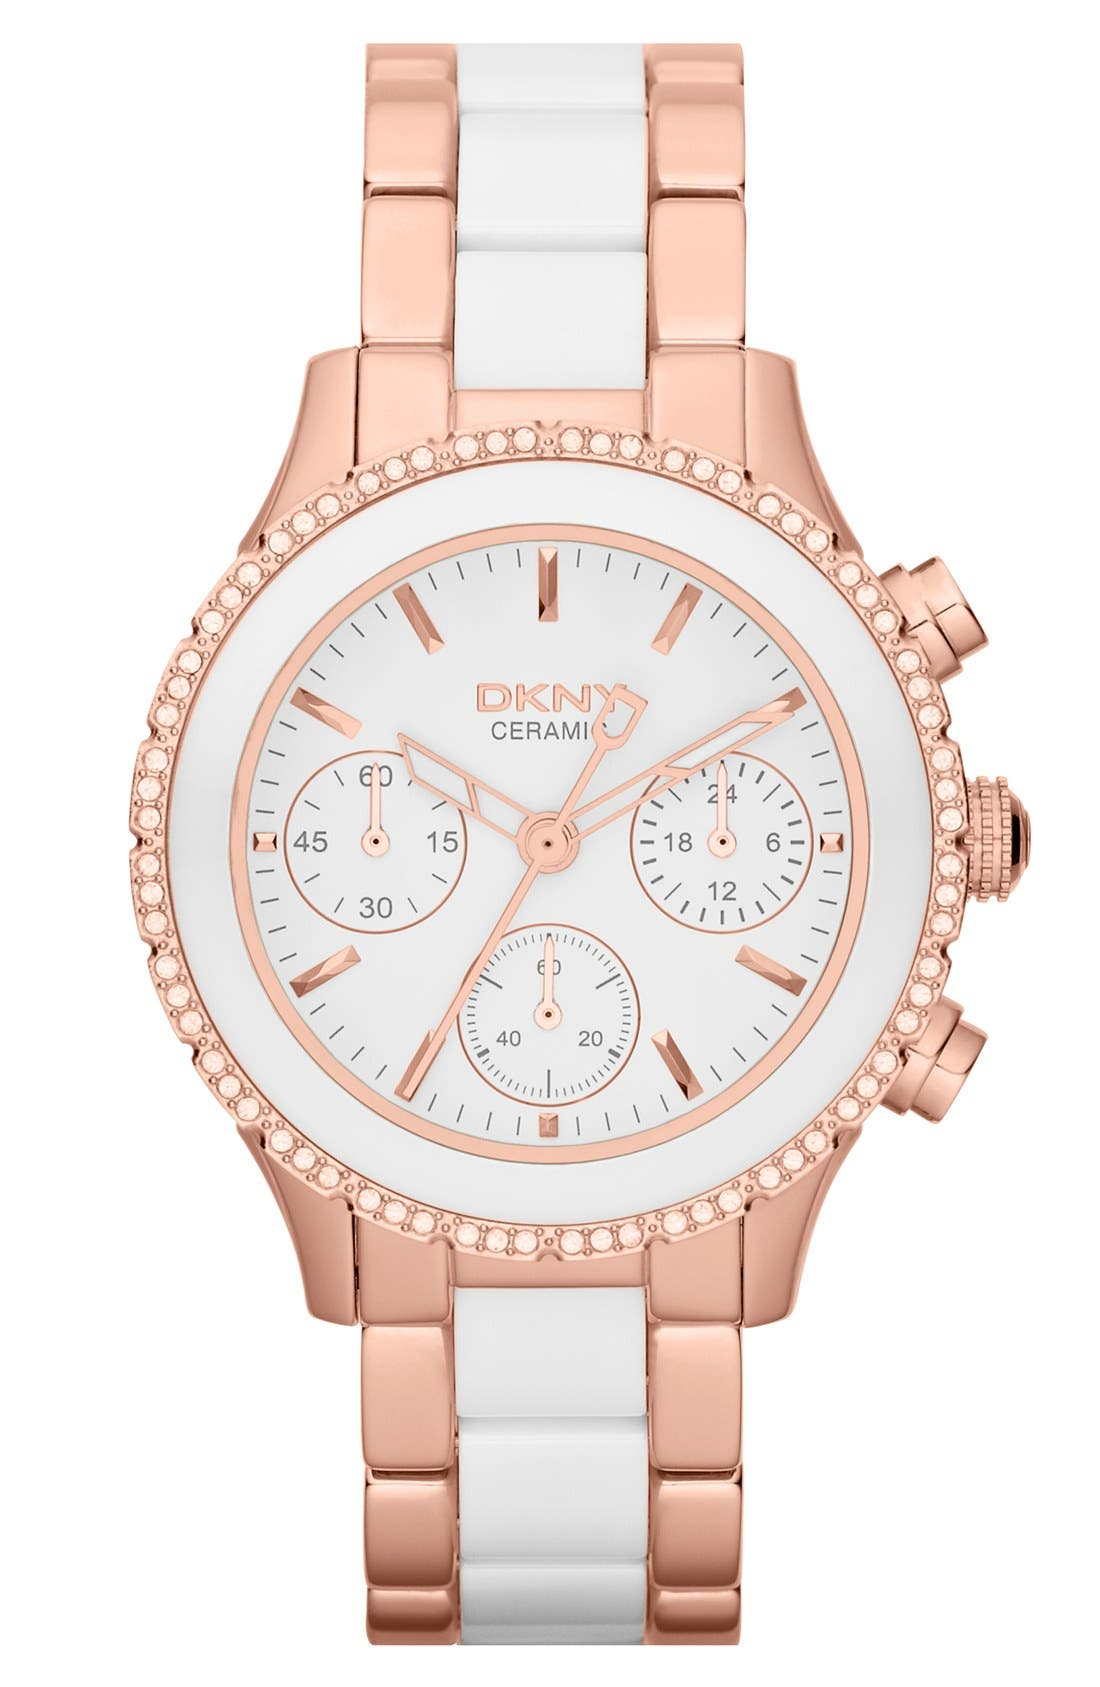 Main Image - DKNY 'Westside' Crystal Bezel Chronograph Ceramic Bracelet Watch, 38mm